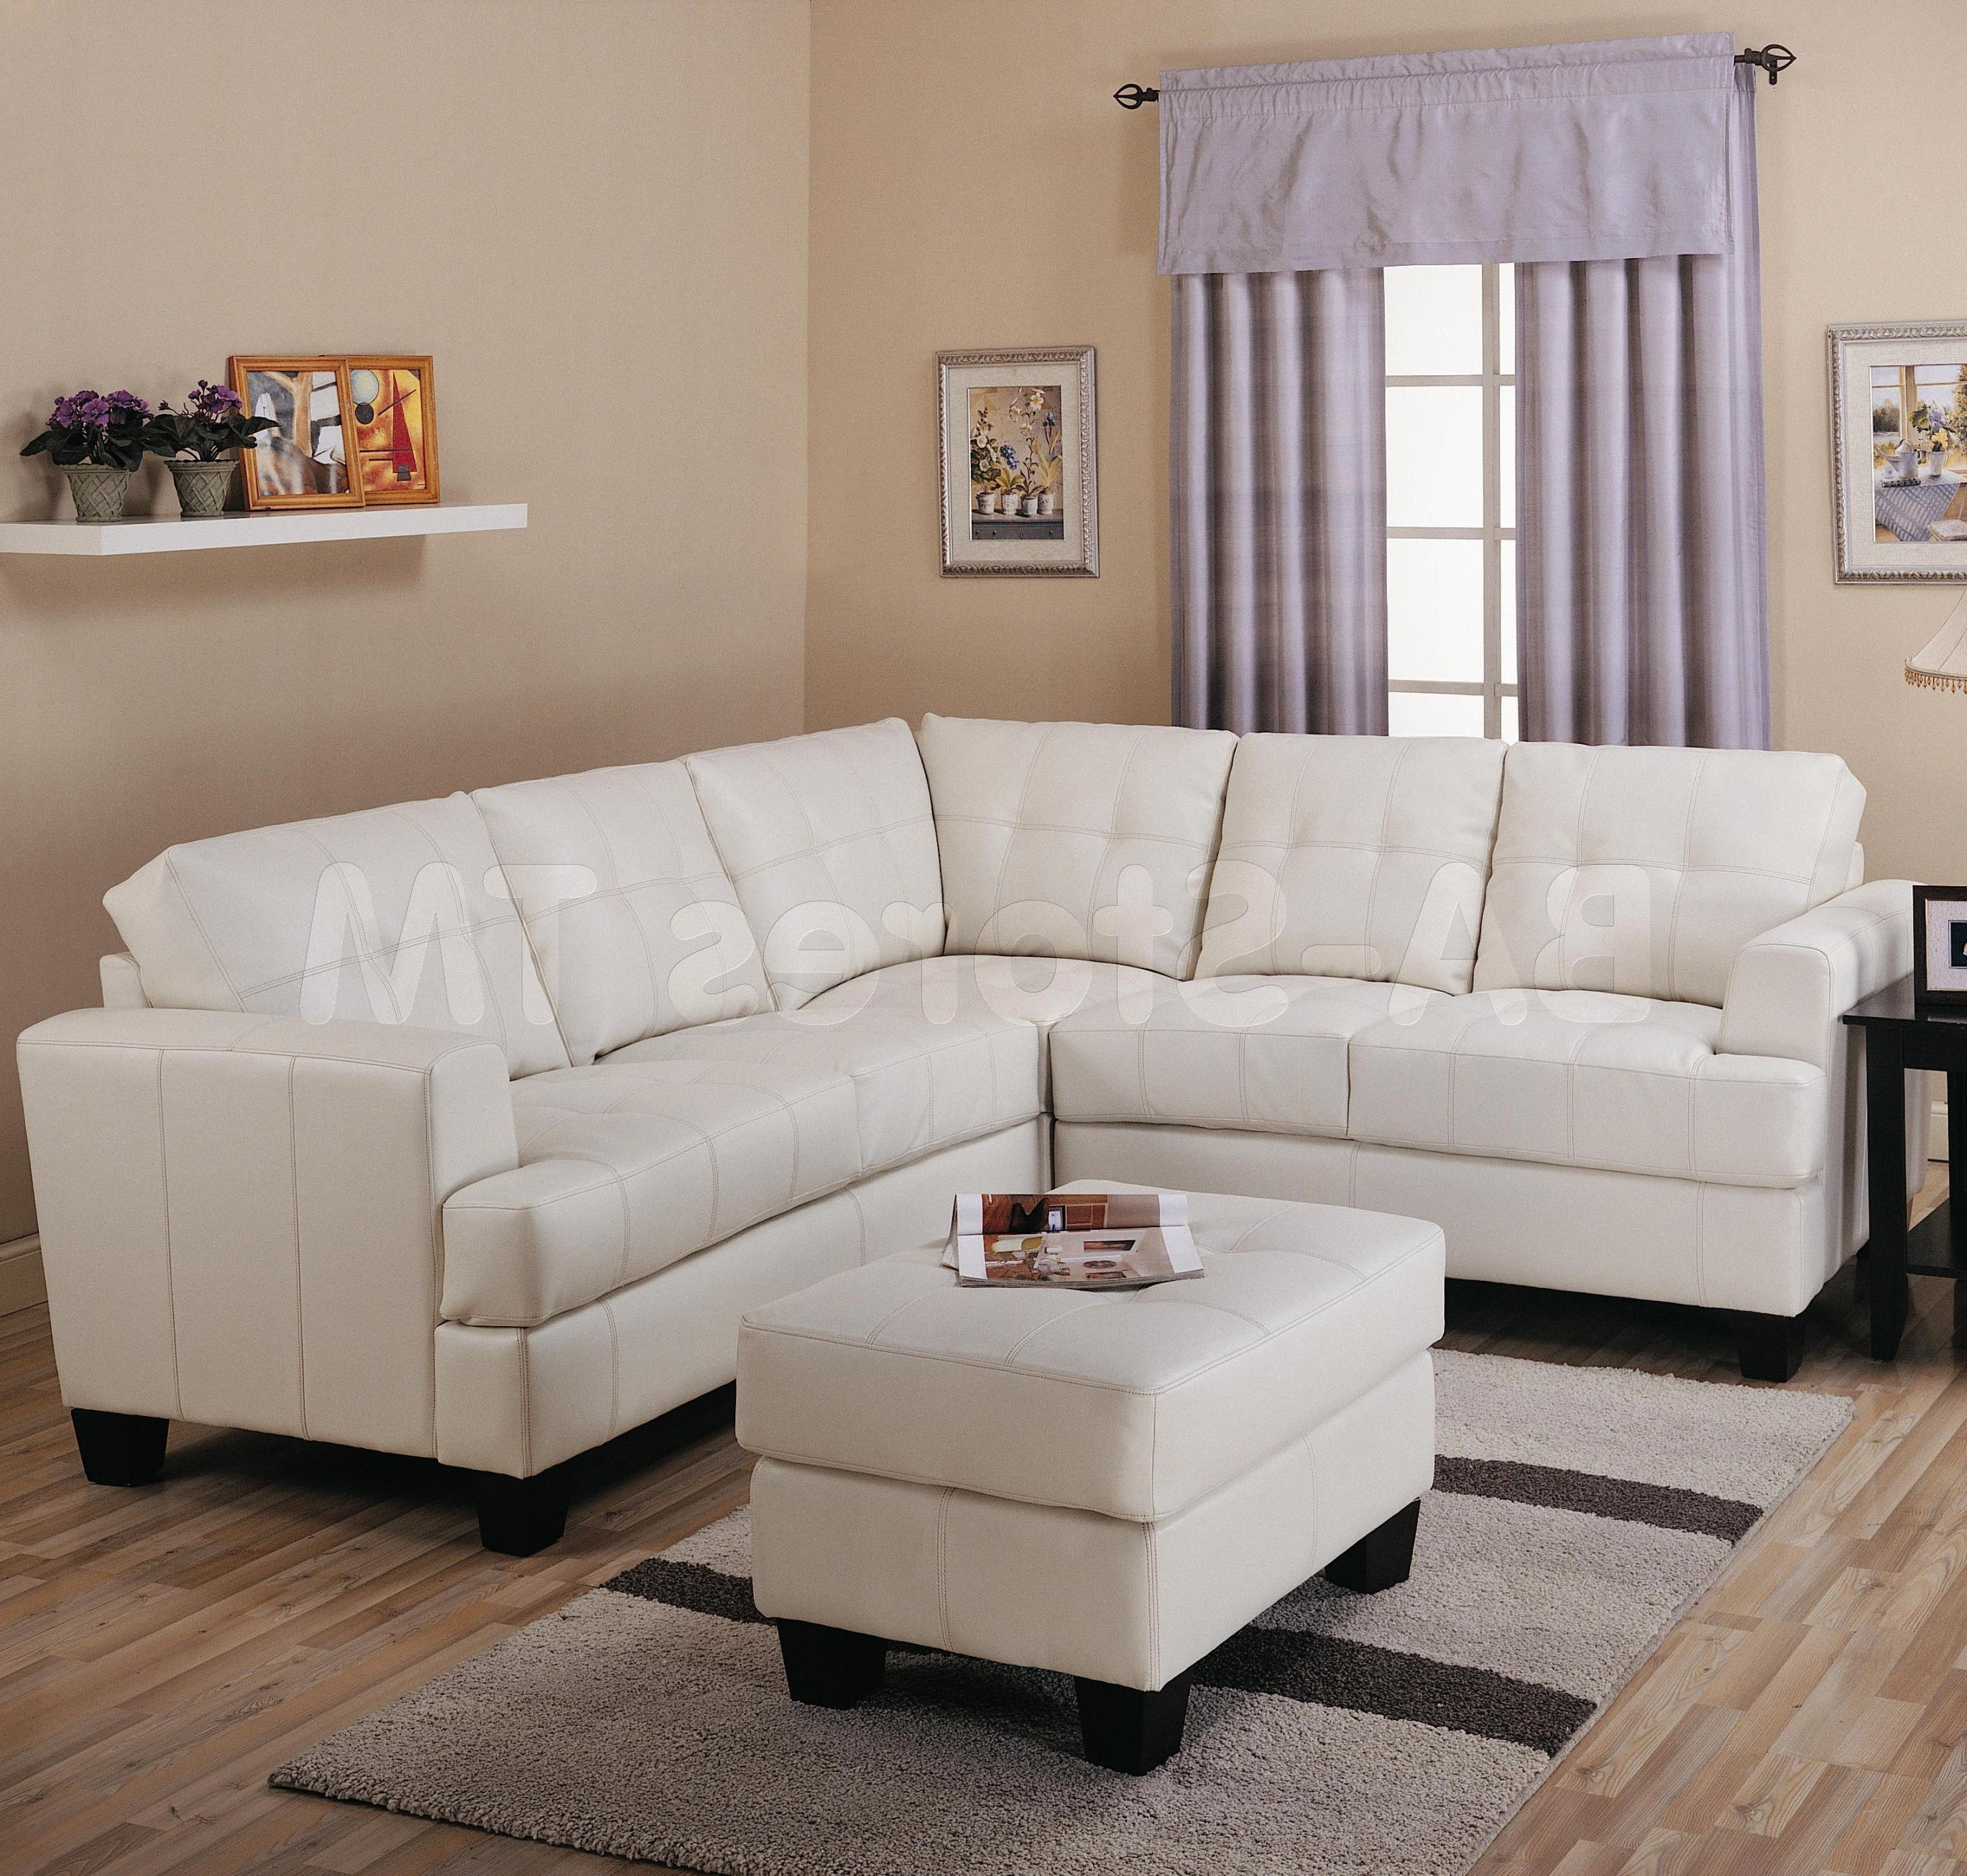 Well Liked Sectional Sofa Design: Adorable Cream Leather Sectional Sofa Cream Regarding Nanaimo Sectional Sofas (View 3 of 15)